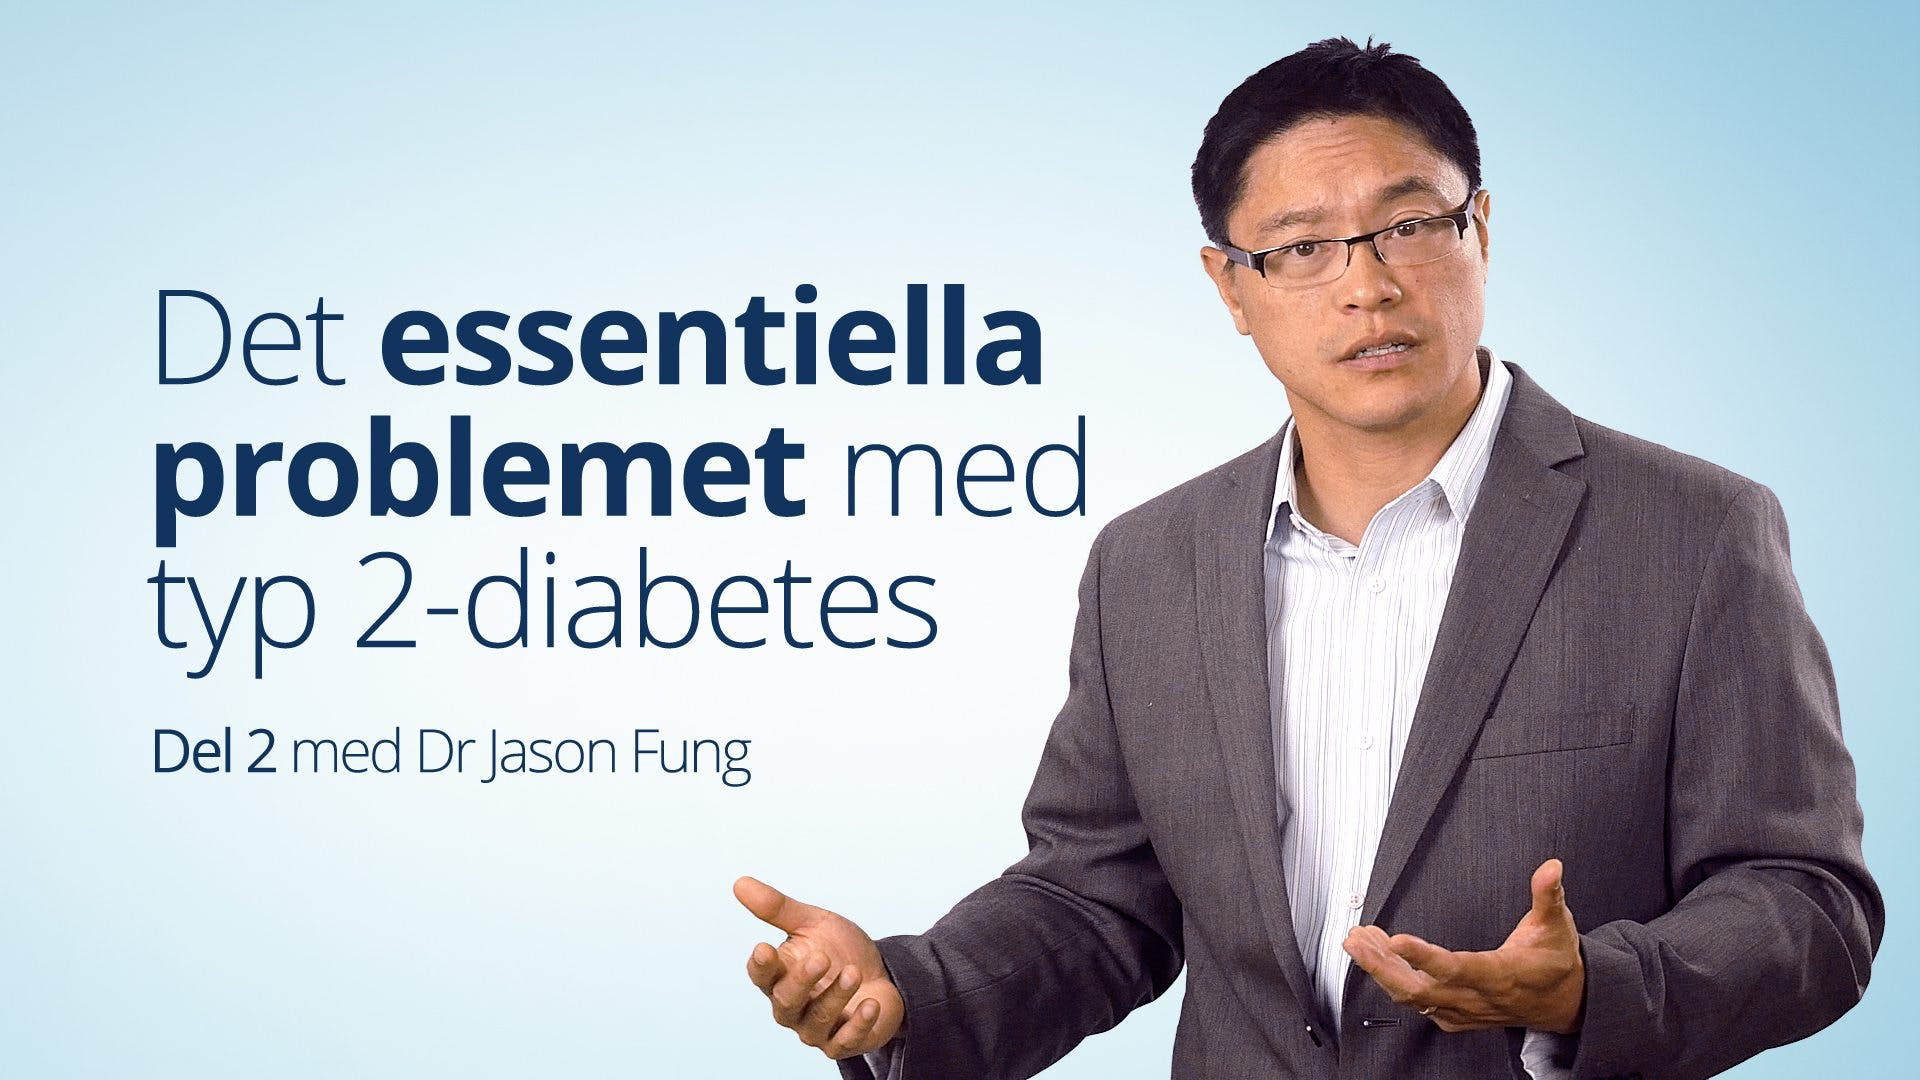 Det essentiella problemet med typ 2-diabetes